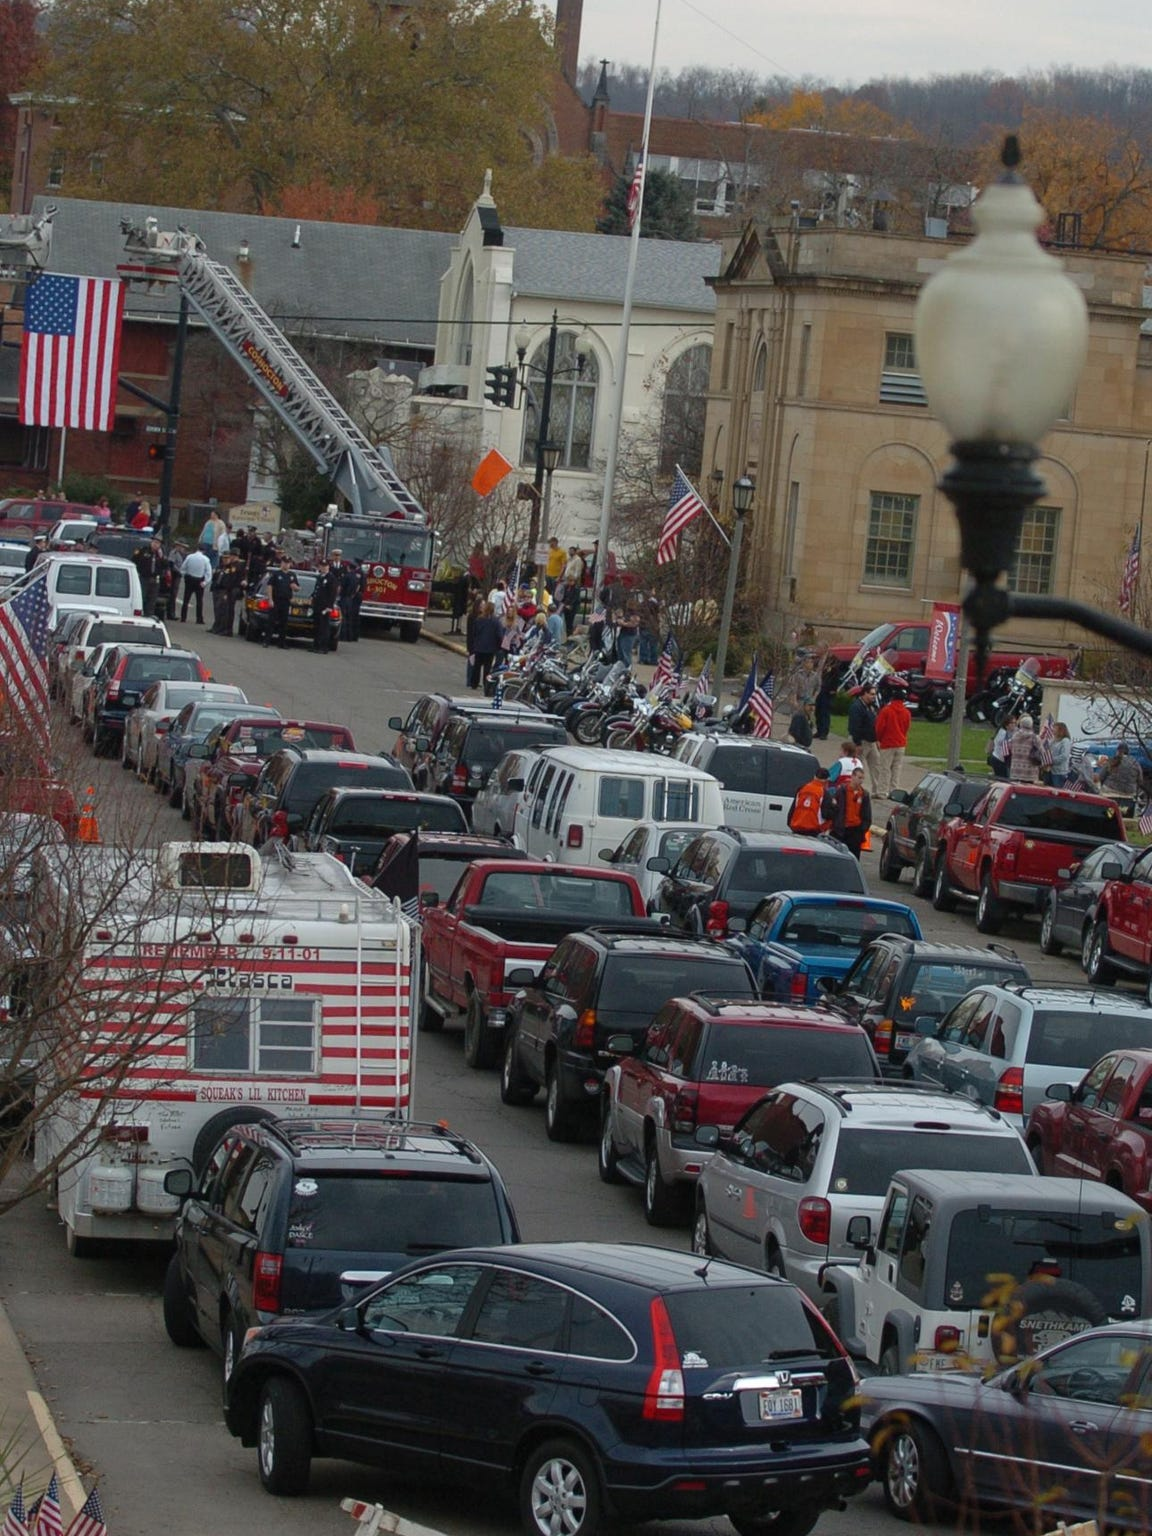 Cars line up in the 600 block of Main Street in front of Miller Funeral Home to take part in the funeral procession for U.S. Navy Builder Chief Petty Officer Raymond Border. The 31-year-old West Lafayette native was killed Oct. 19, 2011 in Paktika province, Afghanistan, while assisting with a road assessment for a convoy.